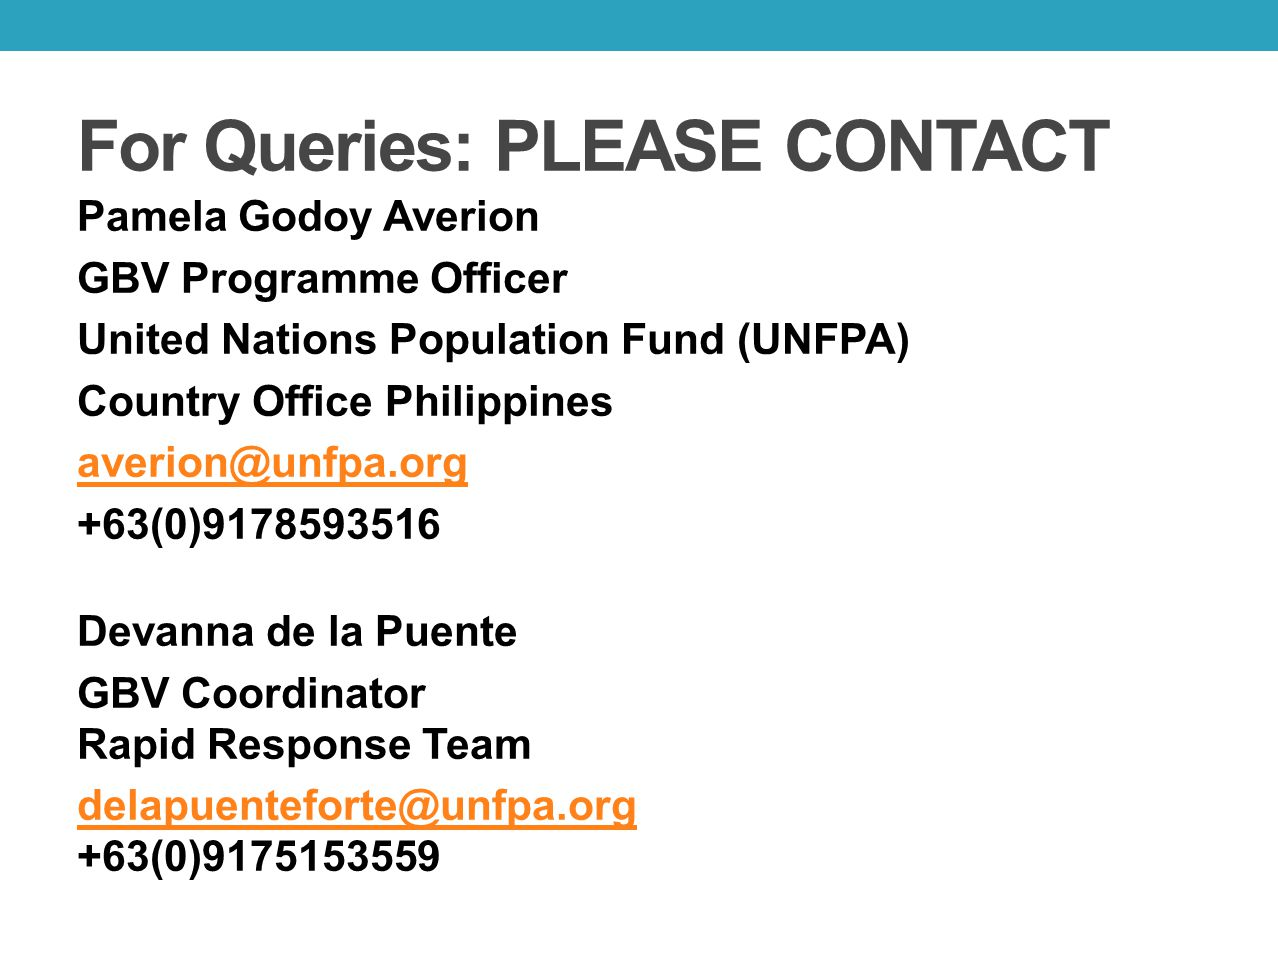 For Queries: PLEASE CONTACT Pamela Godoy Averion GBV Programme Officer United Nations Population Fund (UNFPA) Country Office Philippines averion@unfpa